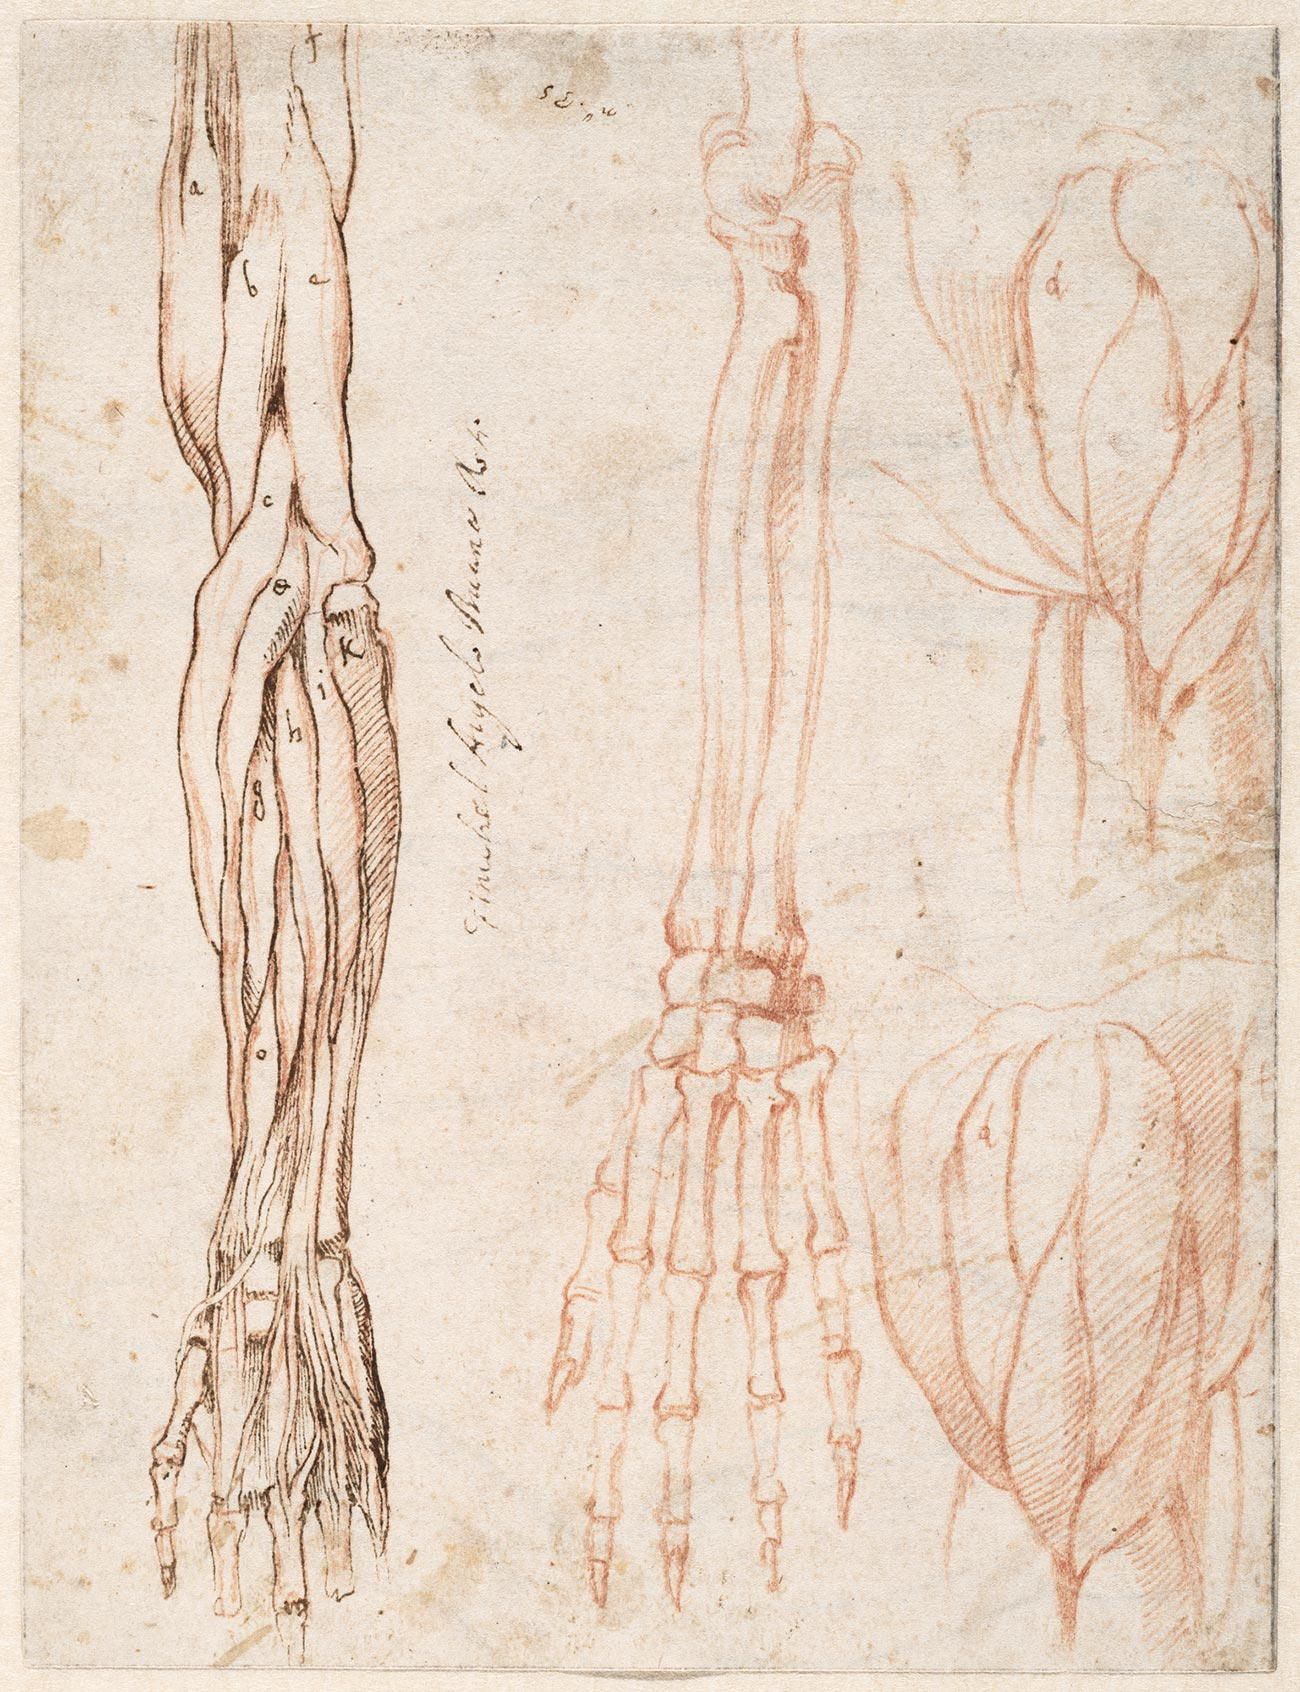 Anatomical sketches of arm and shoulder